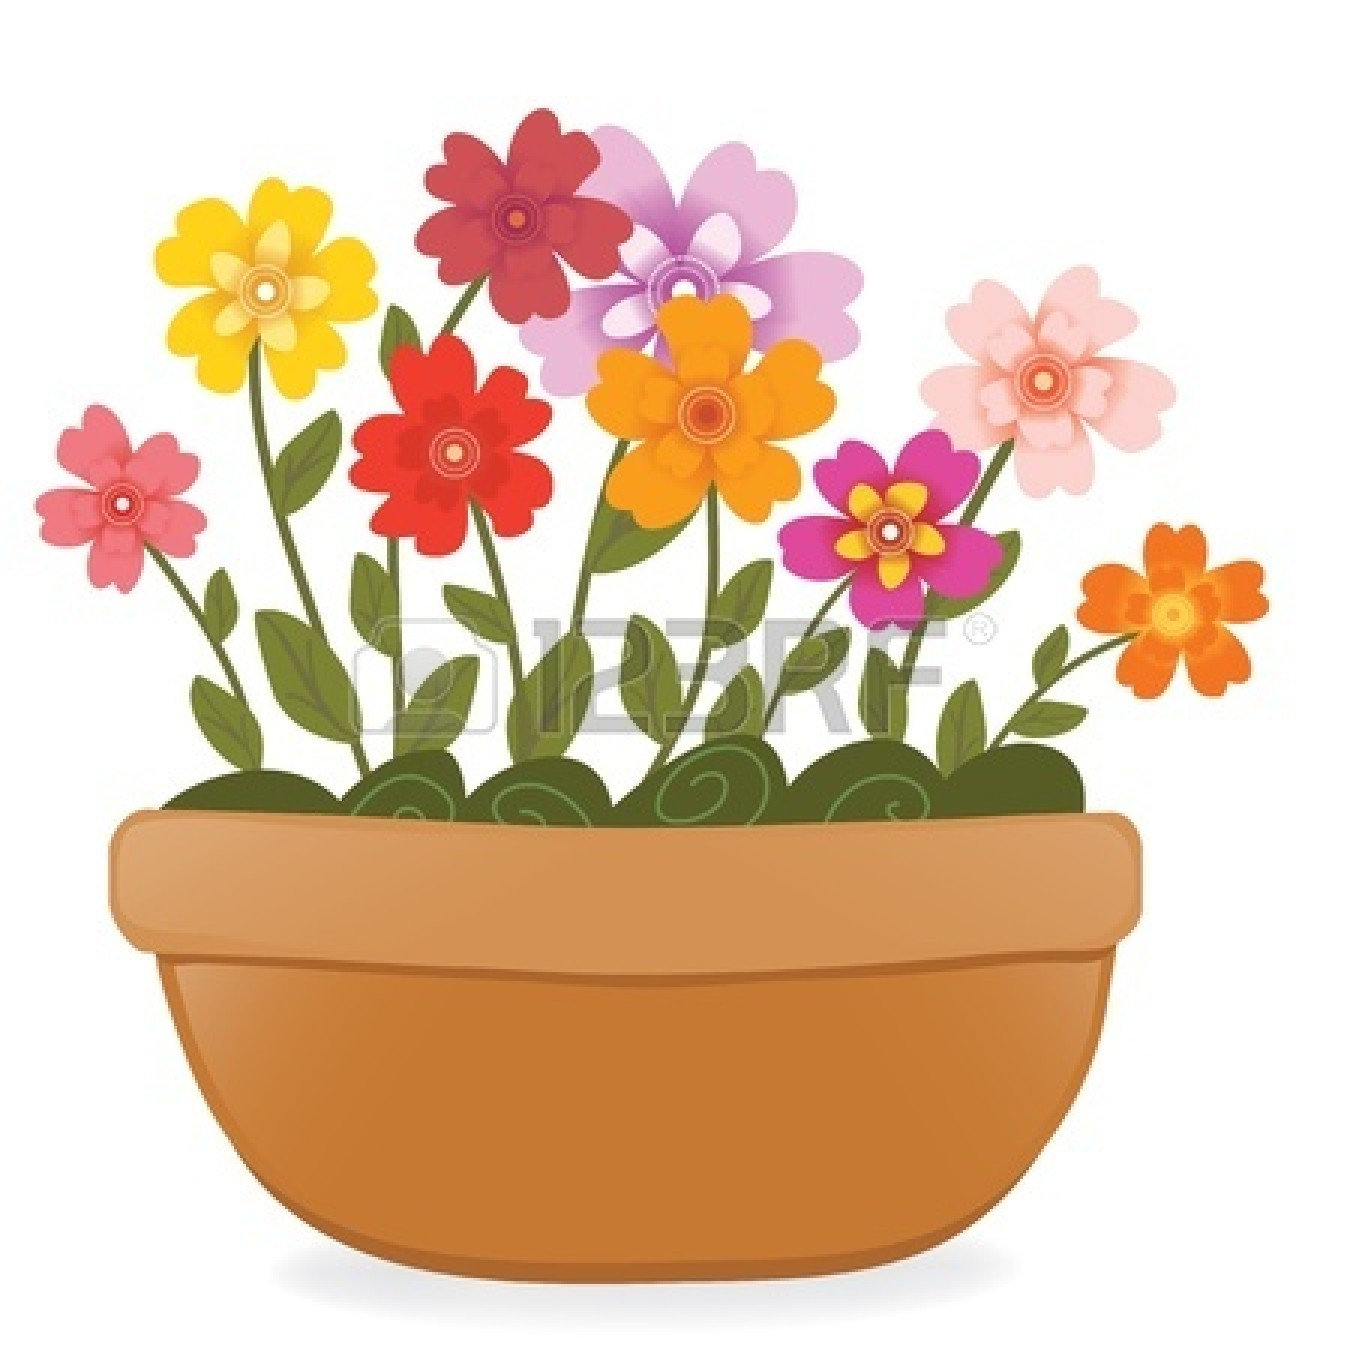 Free Clip Art Flowers In Pots 85